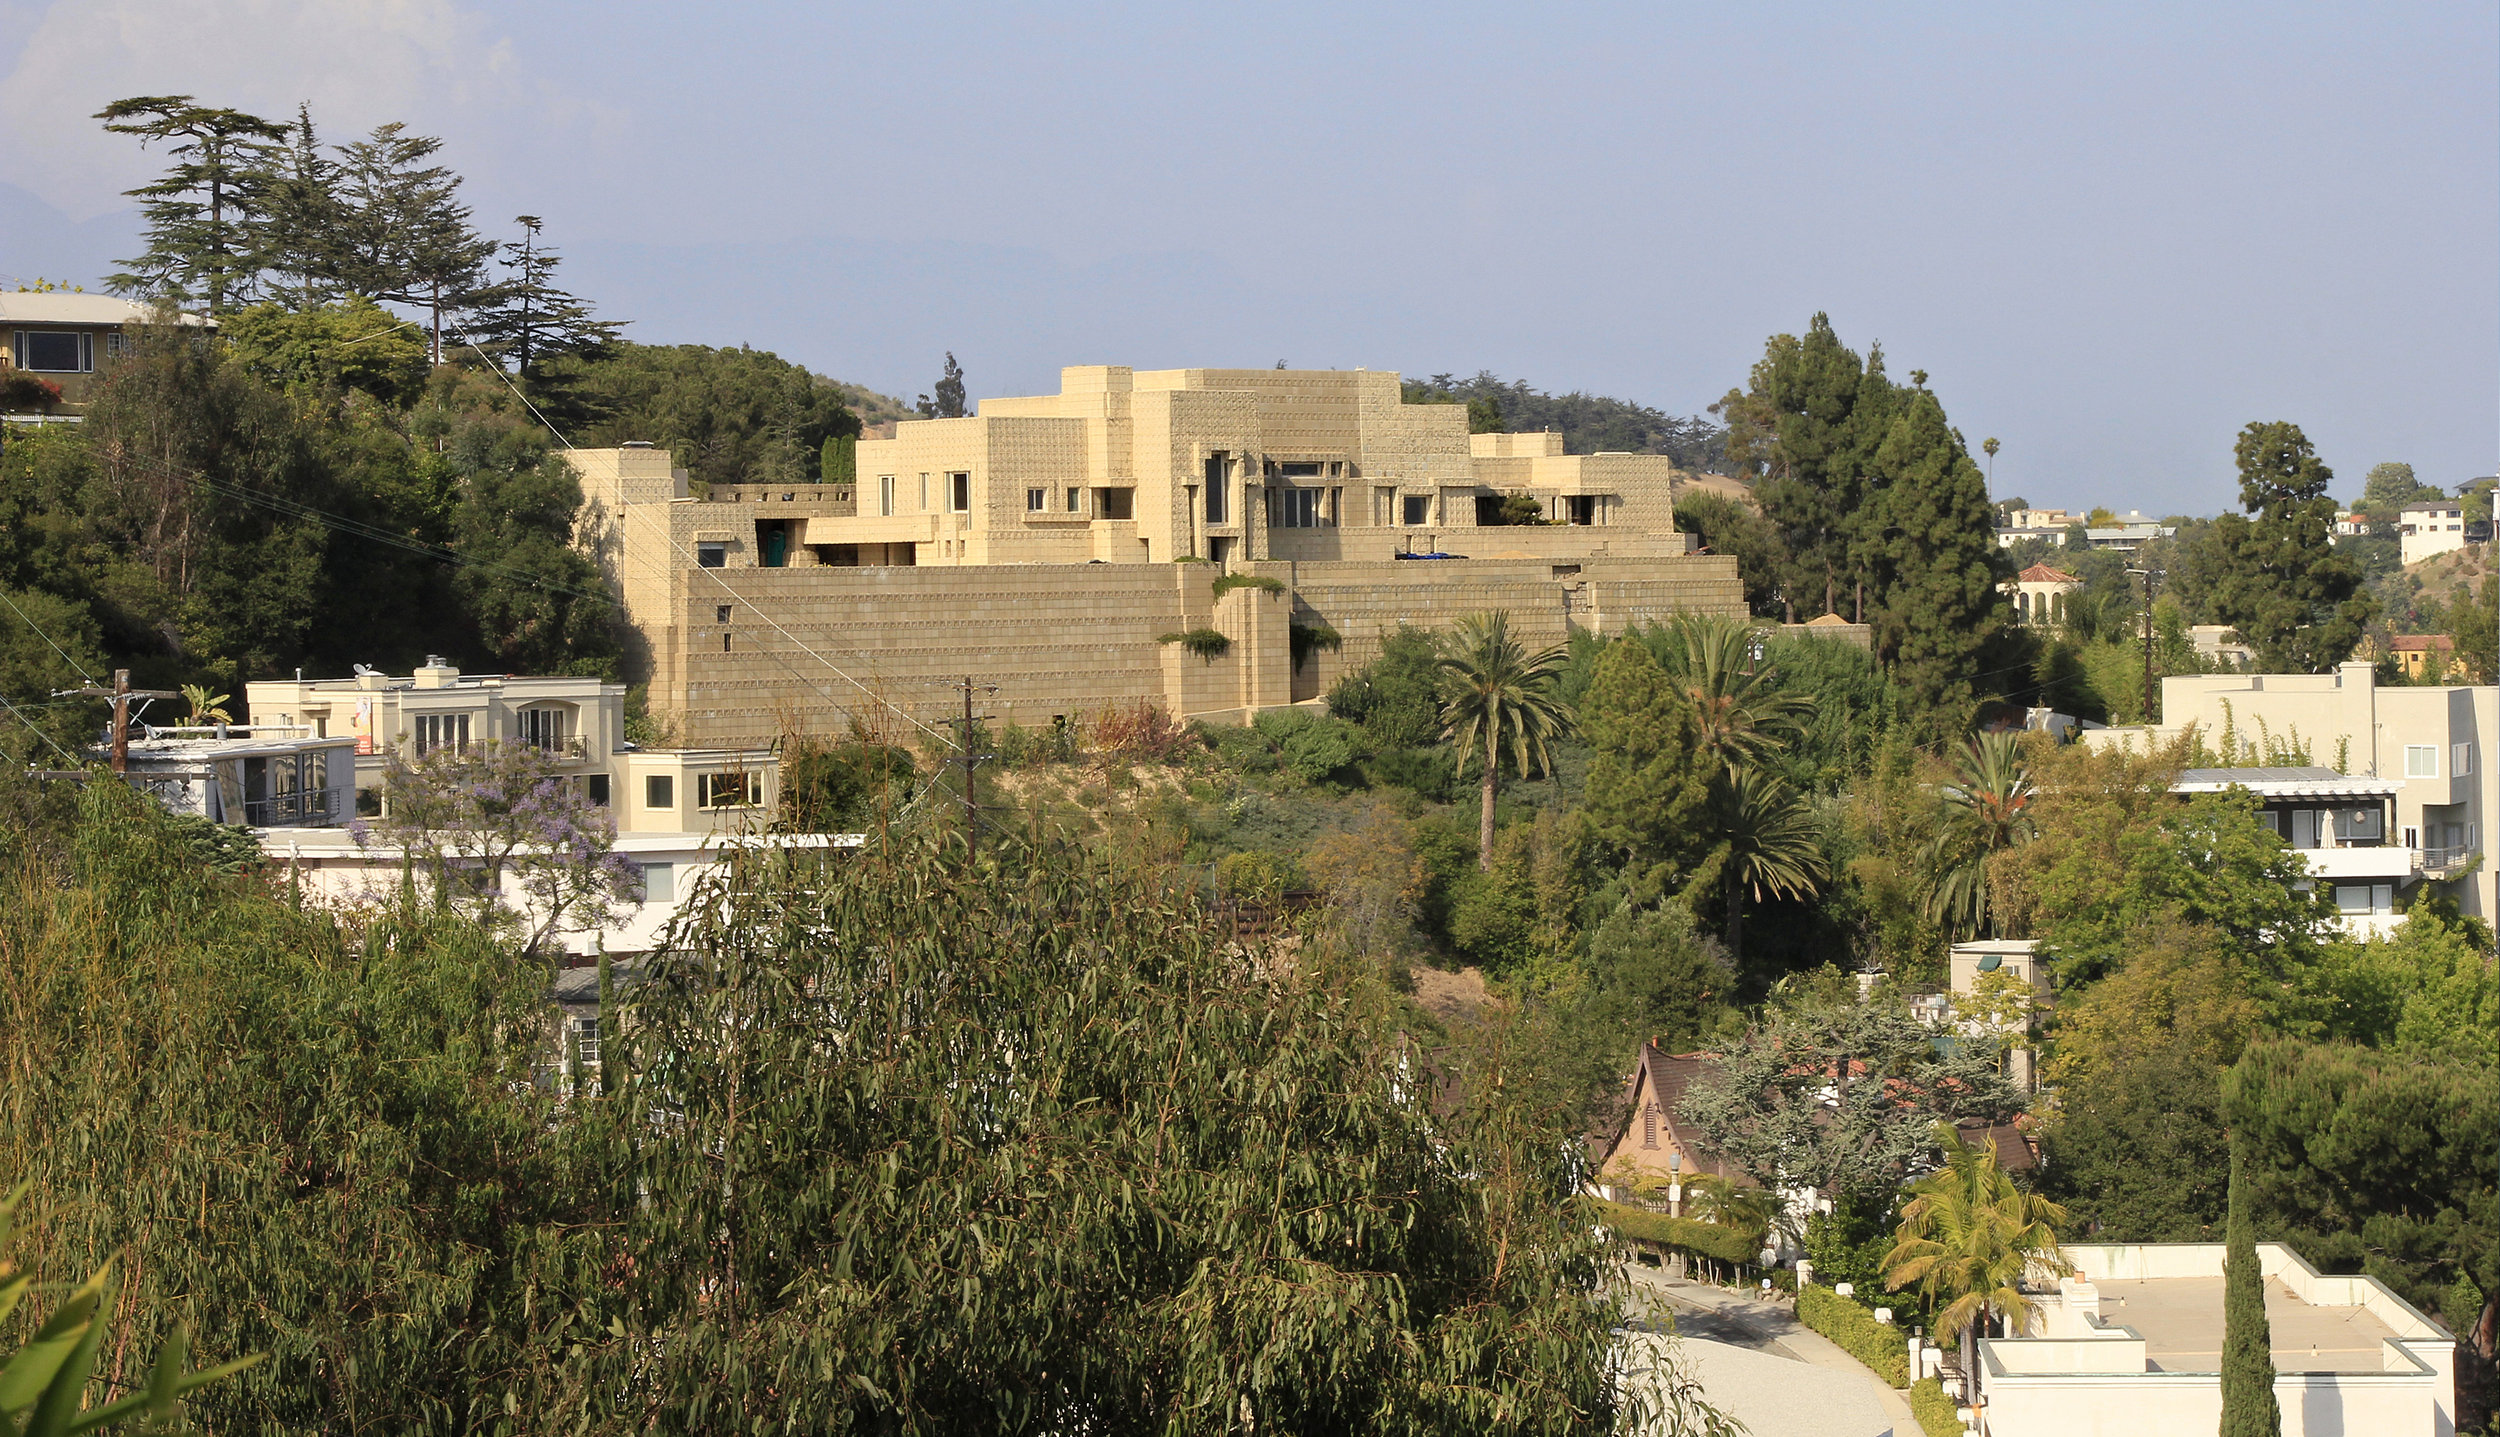 Ennis House - Frank Lloyd Wright. 1924. Los Feliz, Los Angeles. Often recognized from its appearance in many films, including Blade Runner, this monumental home is perched in the hills above Los Feliz.   Learn more about noteworthy architecture in Los Feliz here.